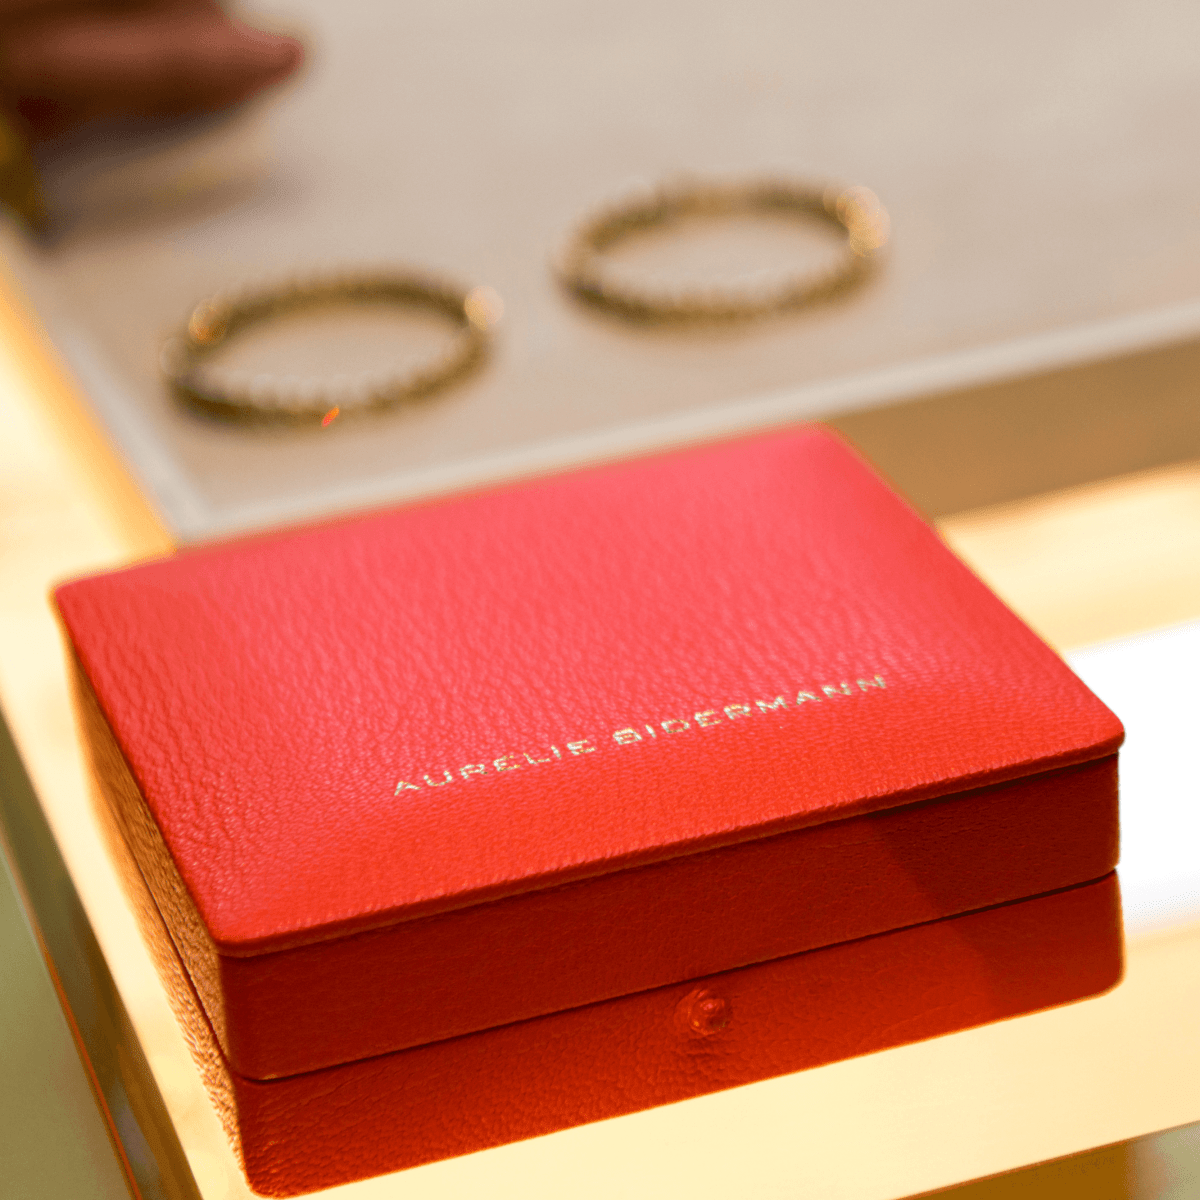 Aurelie Biedermann Jewelry Box